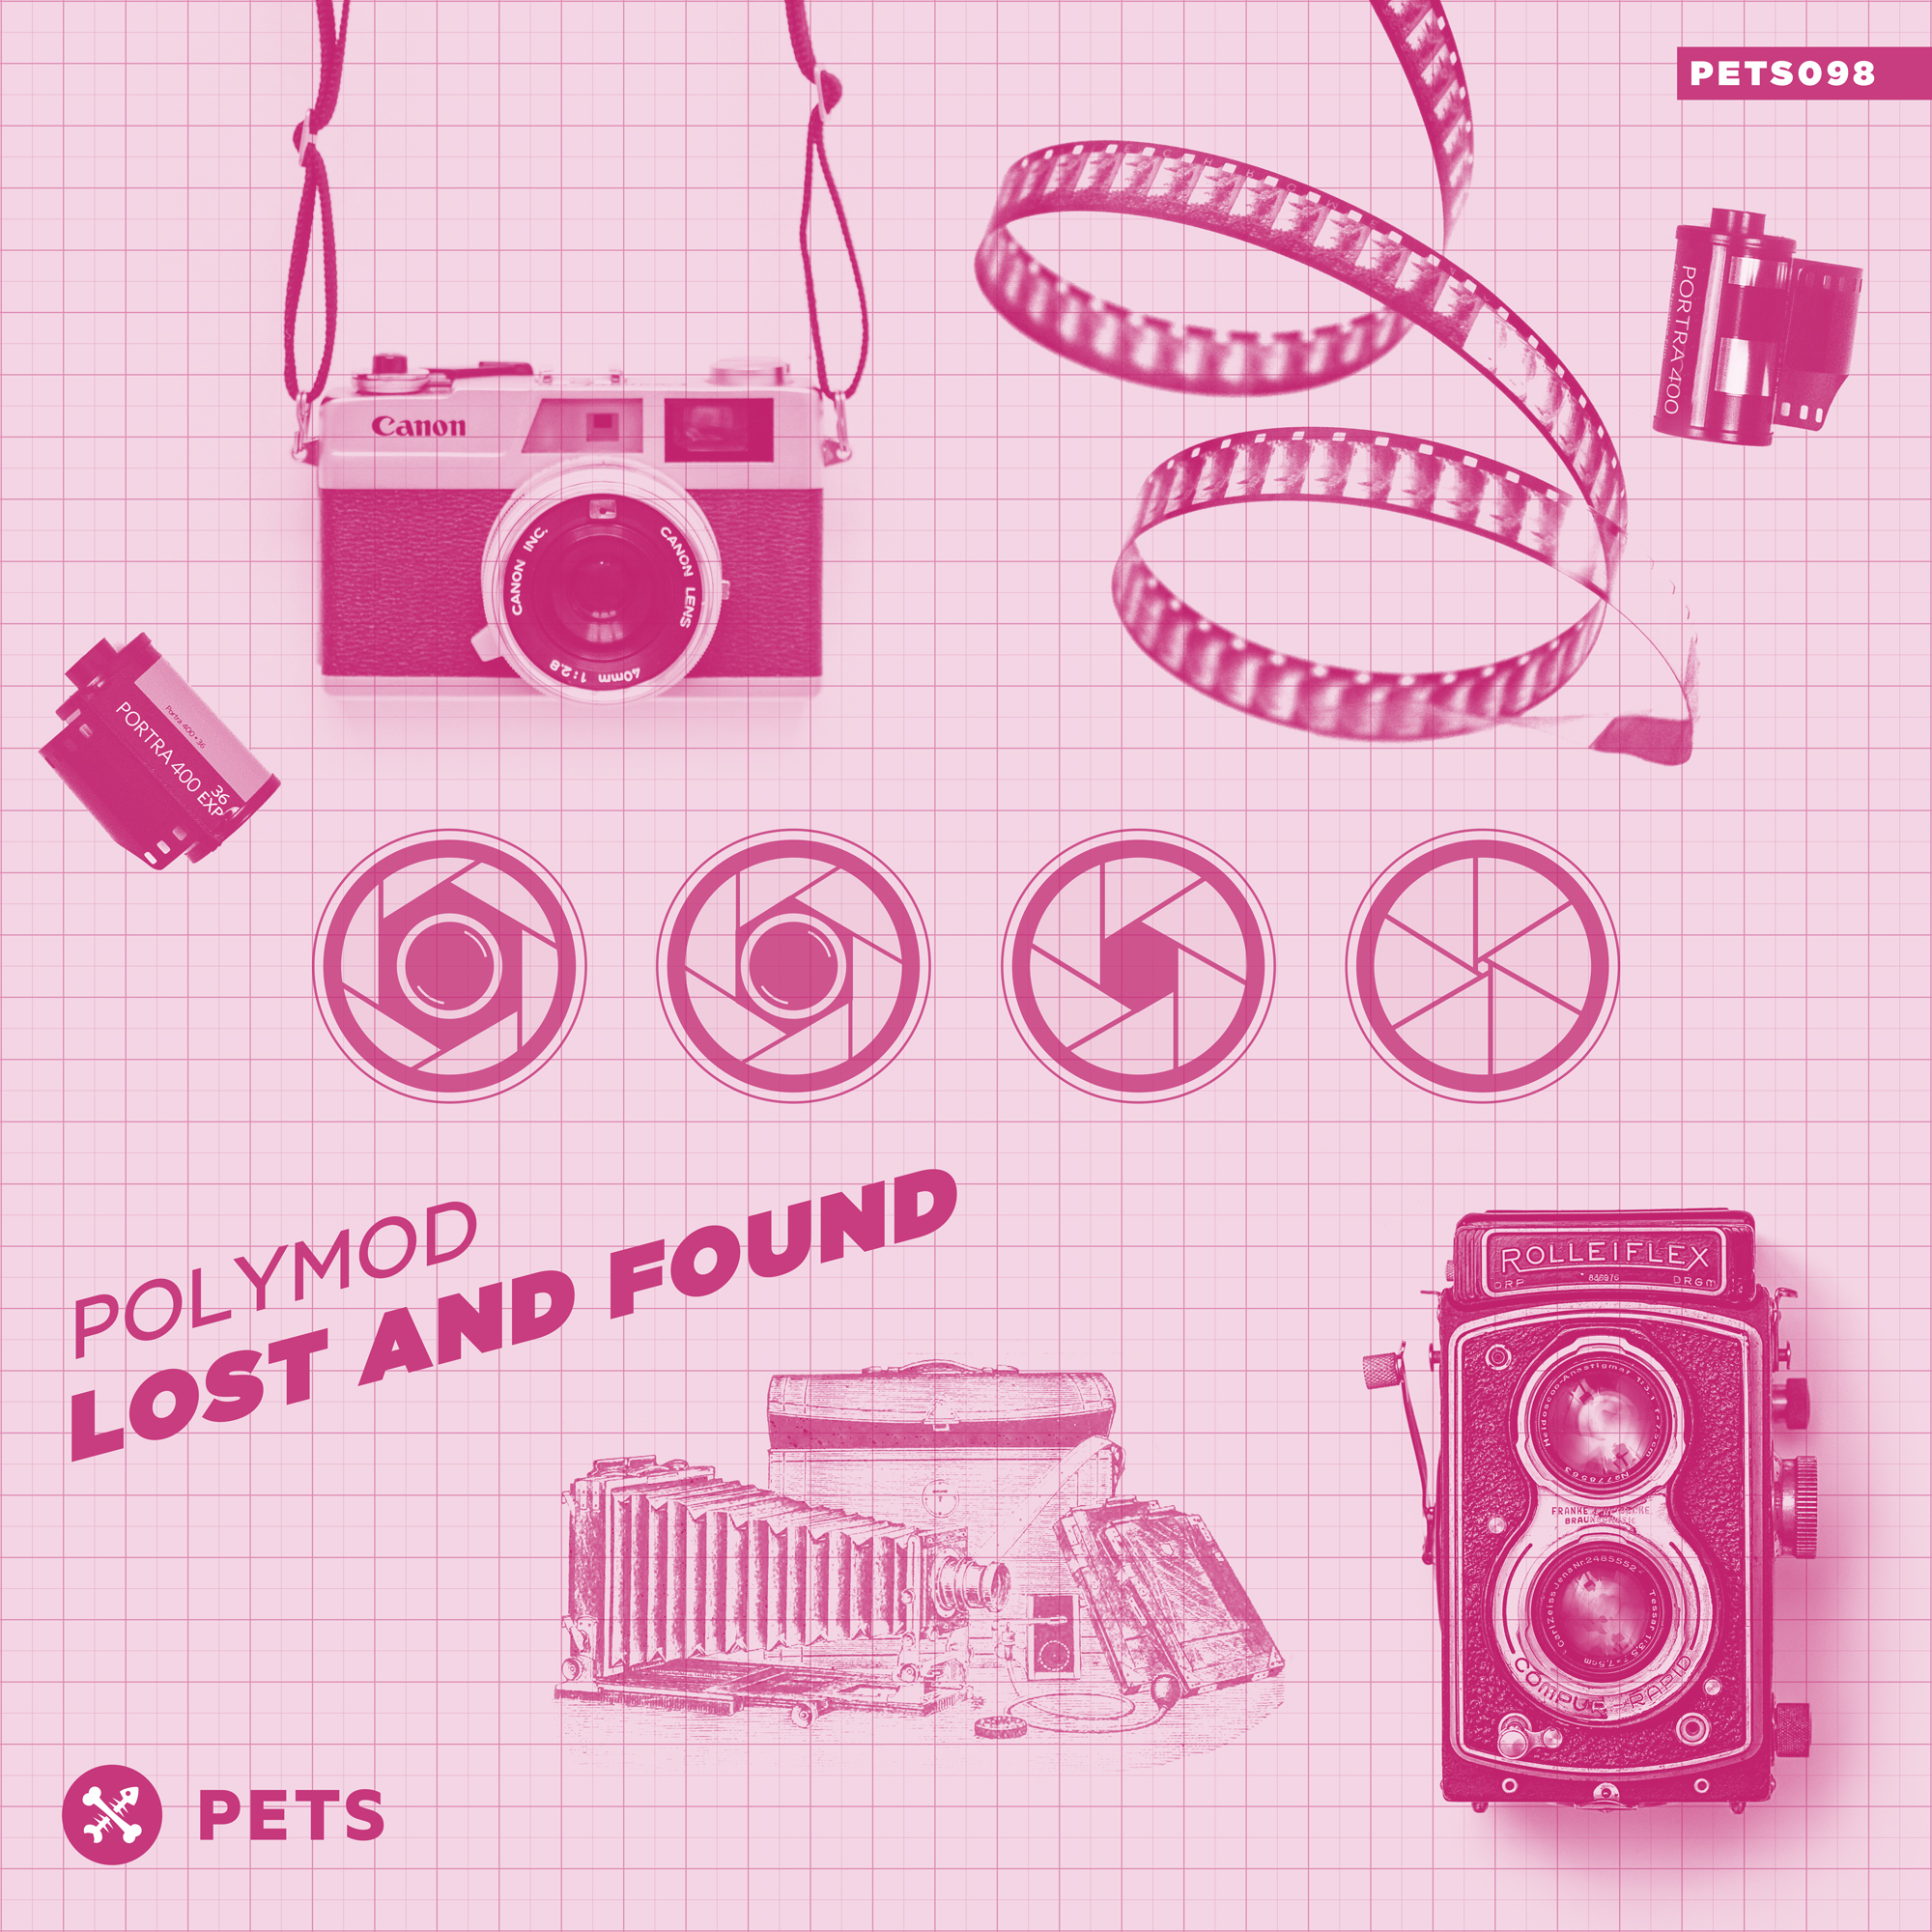 Polymod - Lost and Found